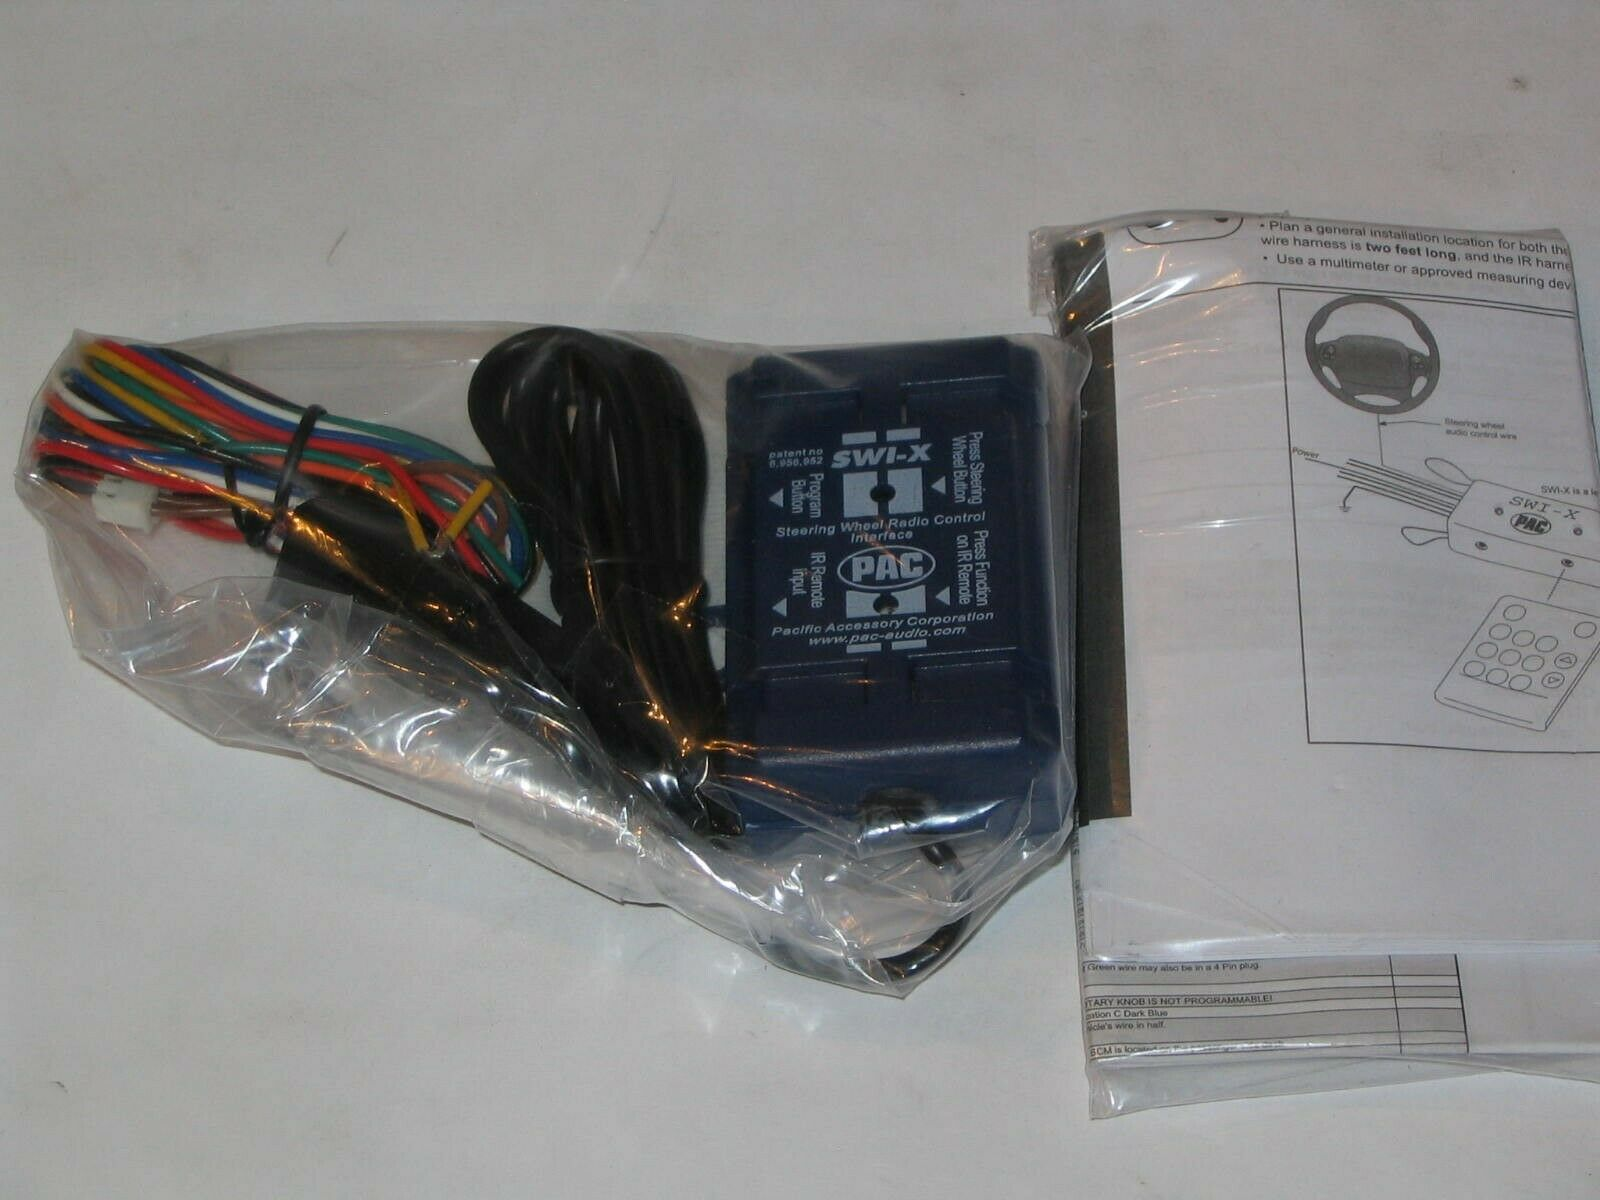 PAC Universal Steering Wheel Control Interface Adapter